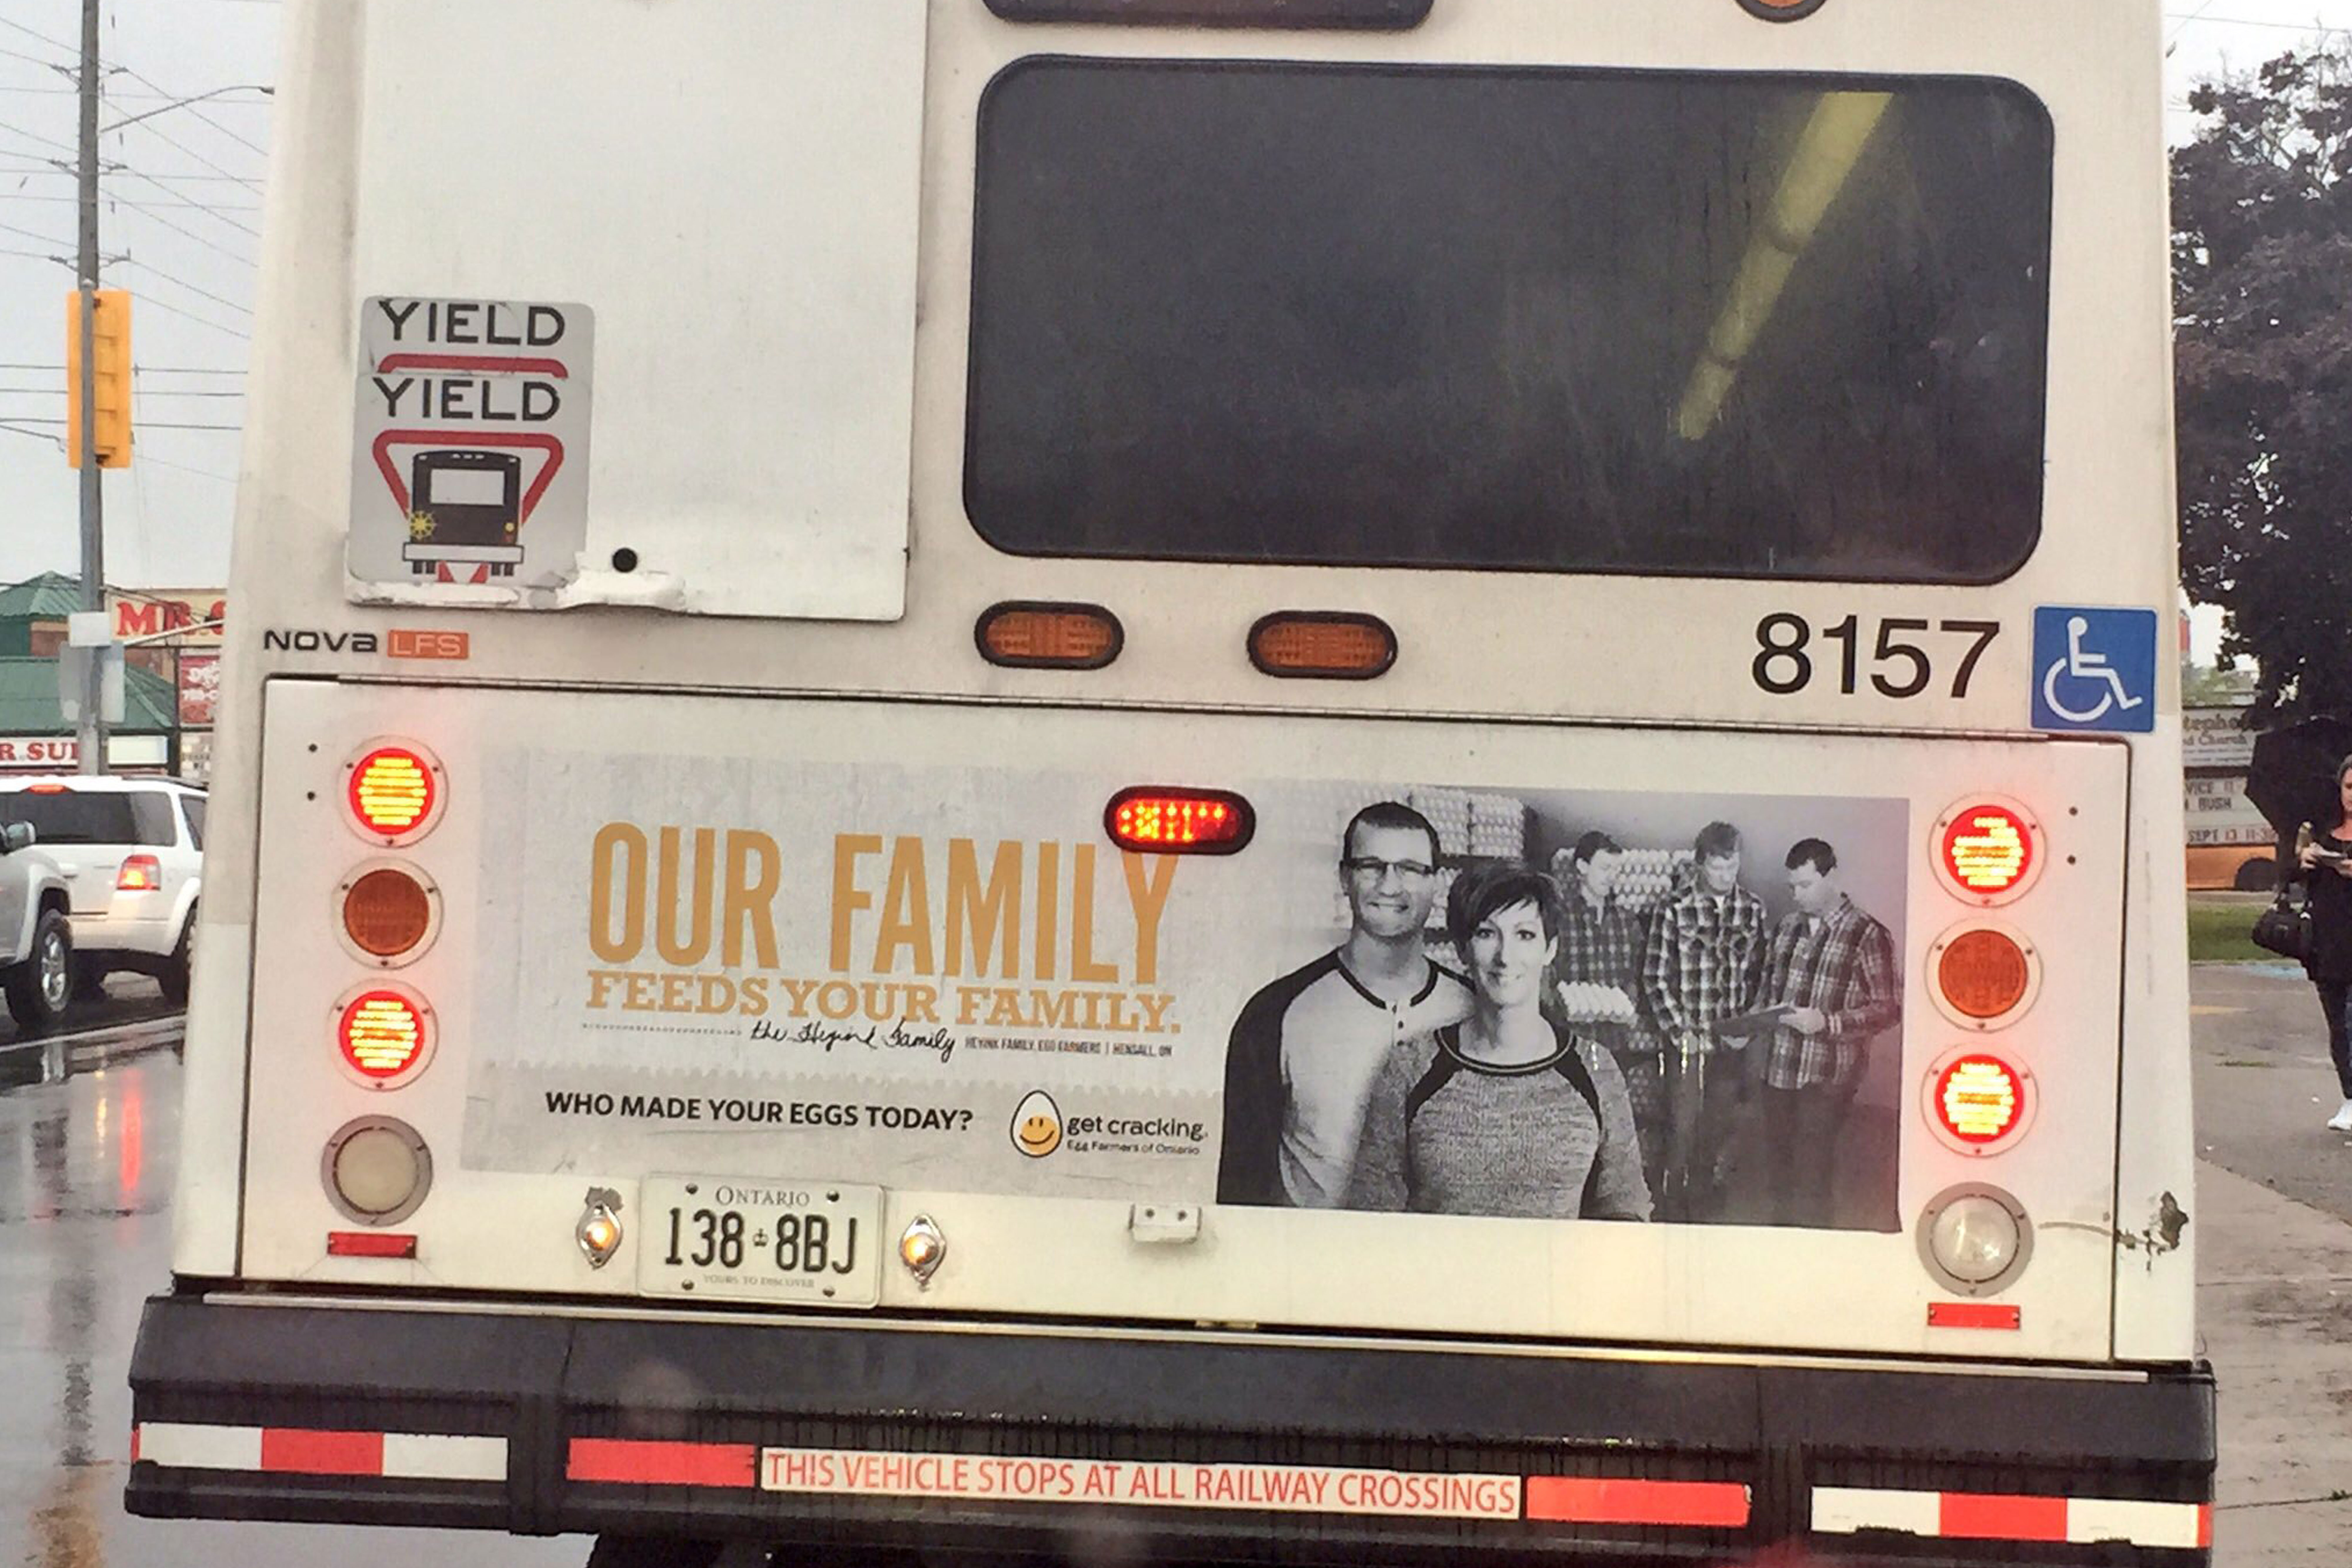 Egg Farmers of Ontario who made your eggs today bus ad